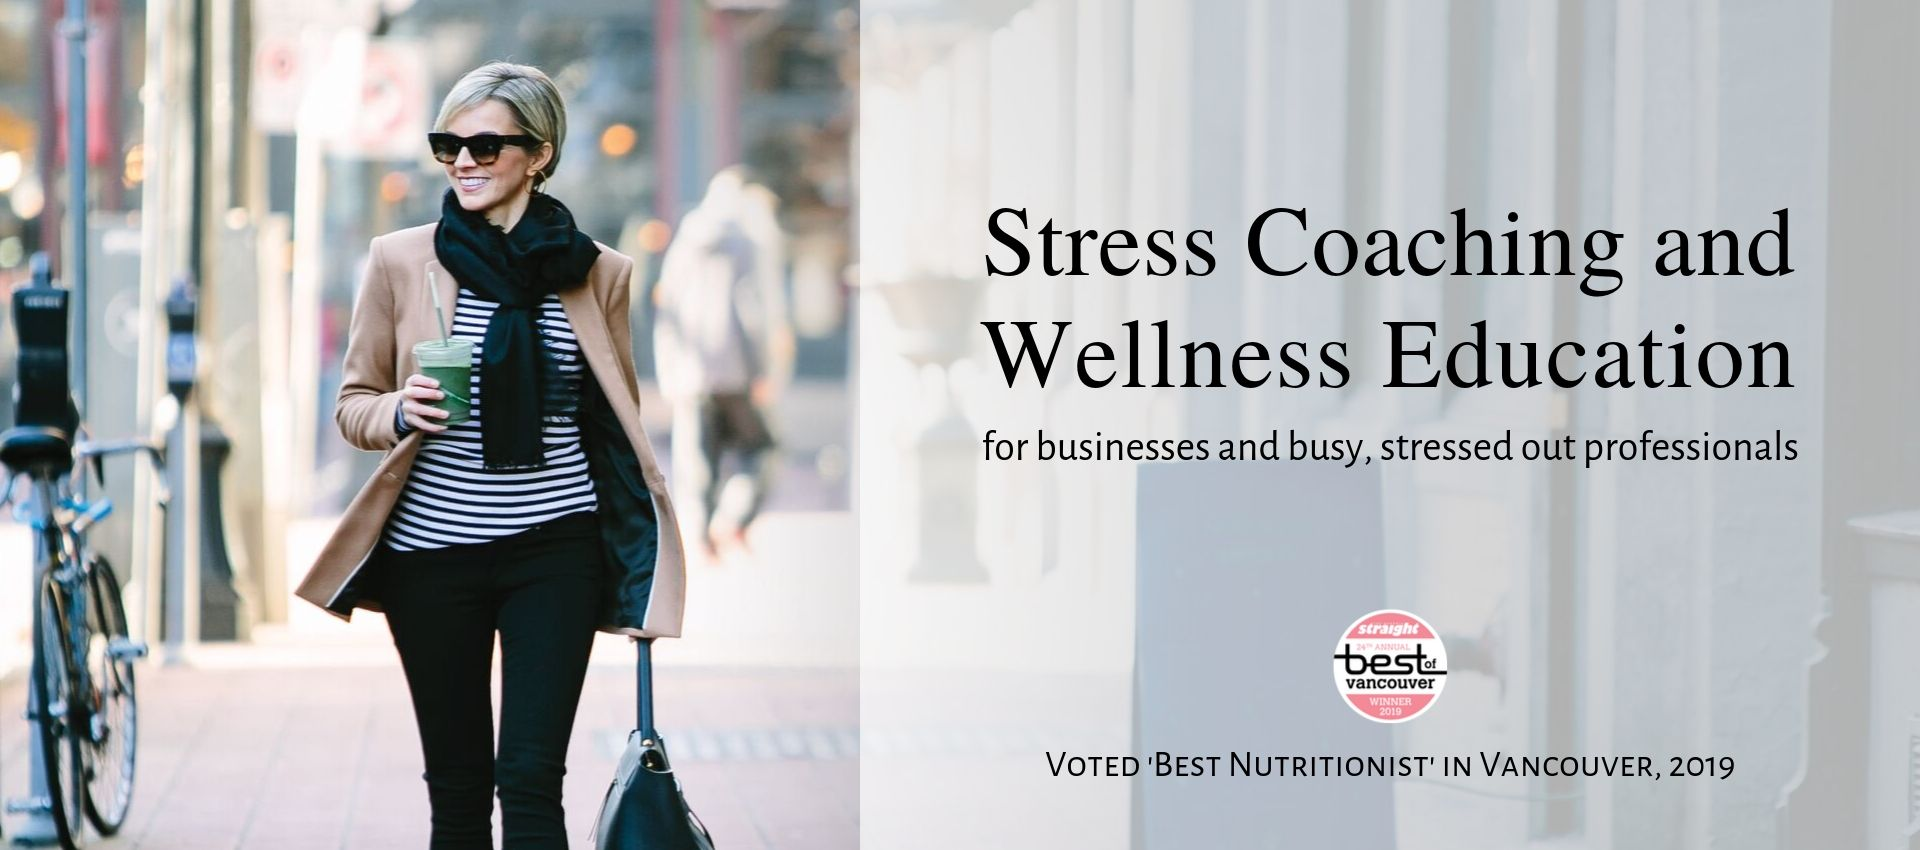 Stress Coach and Wellness Educator Georgia Straight Best Of Awards Nutritionist Vancouver